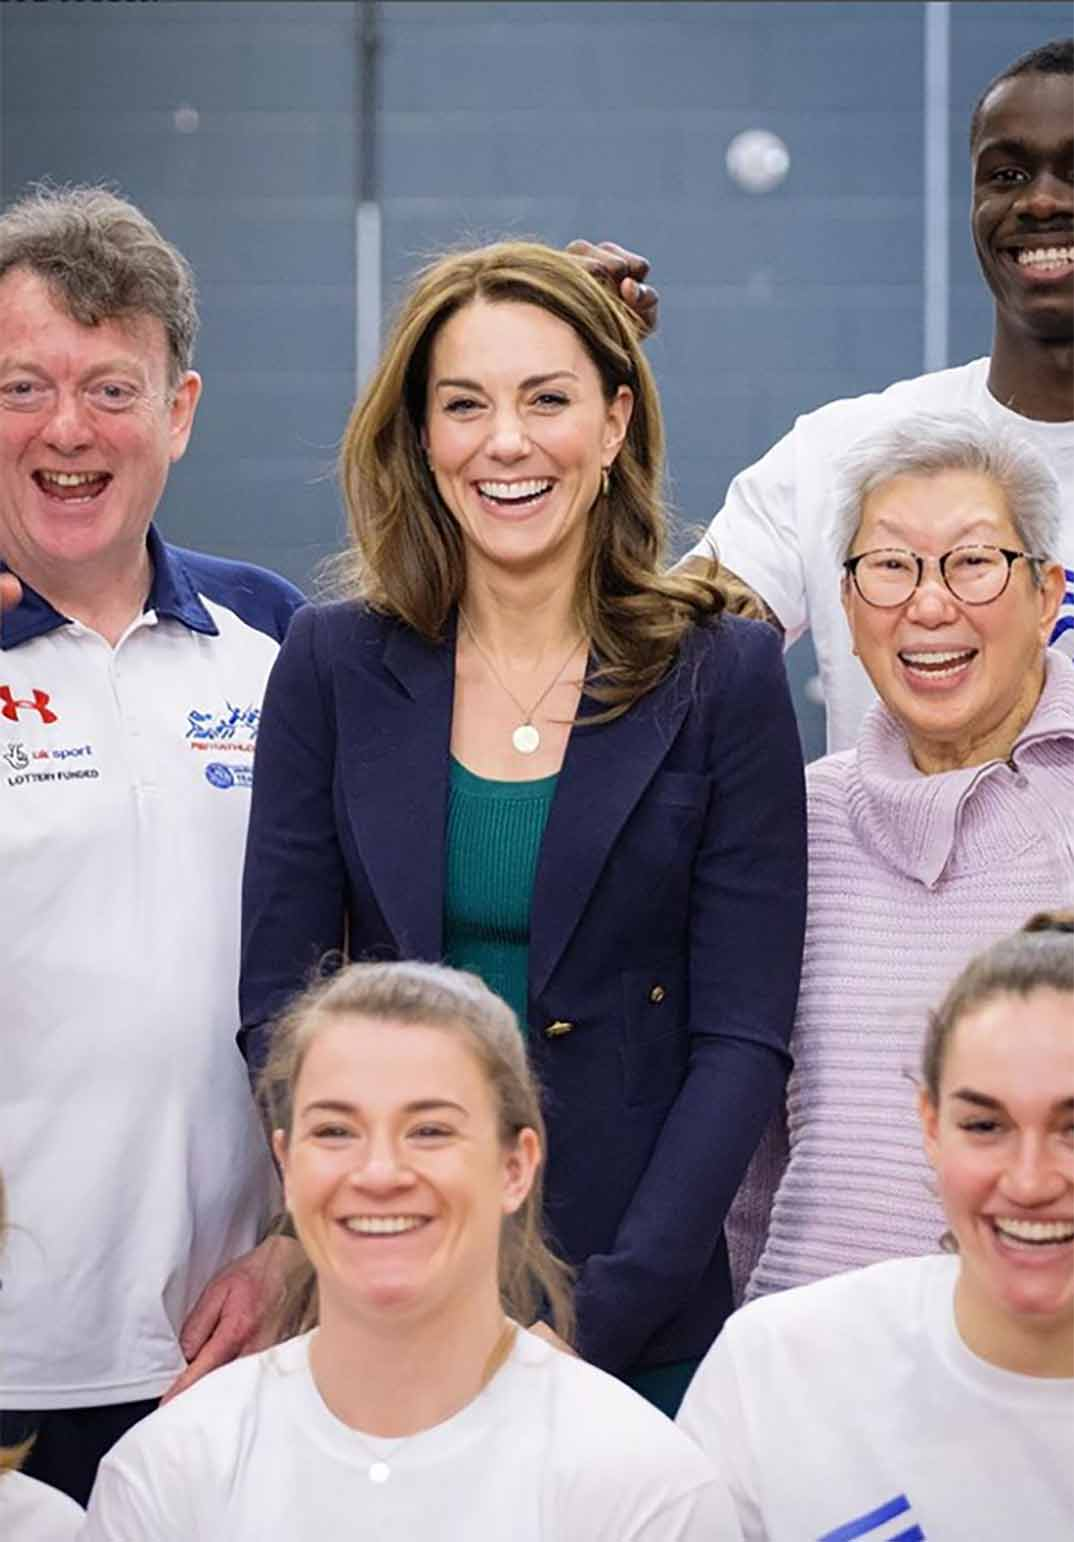 Kate Middleton © kesingtonroyal/Instagram